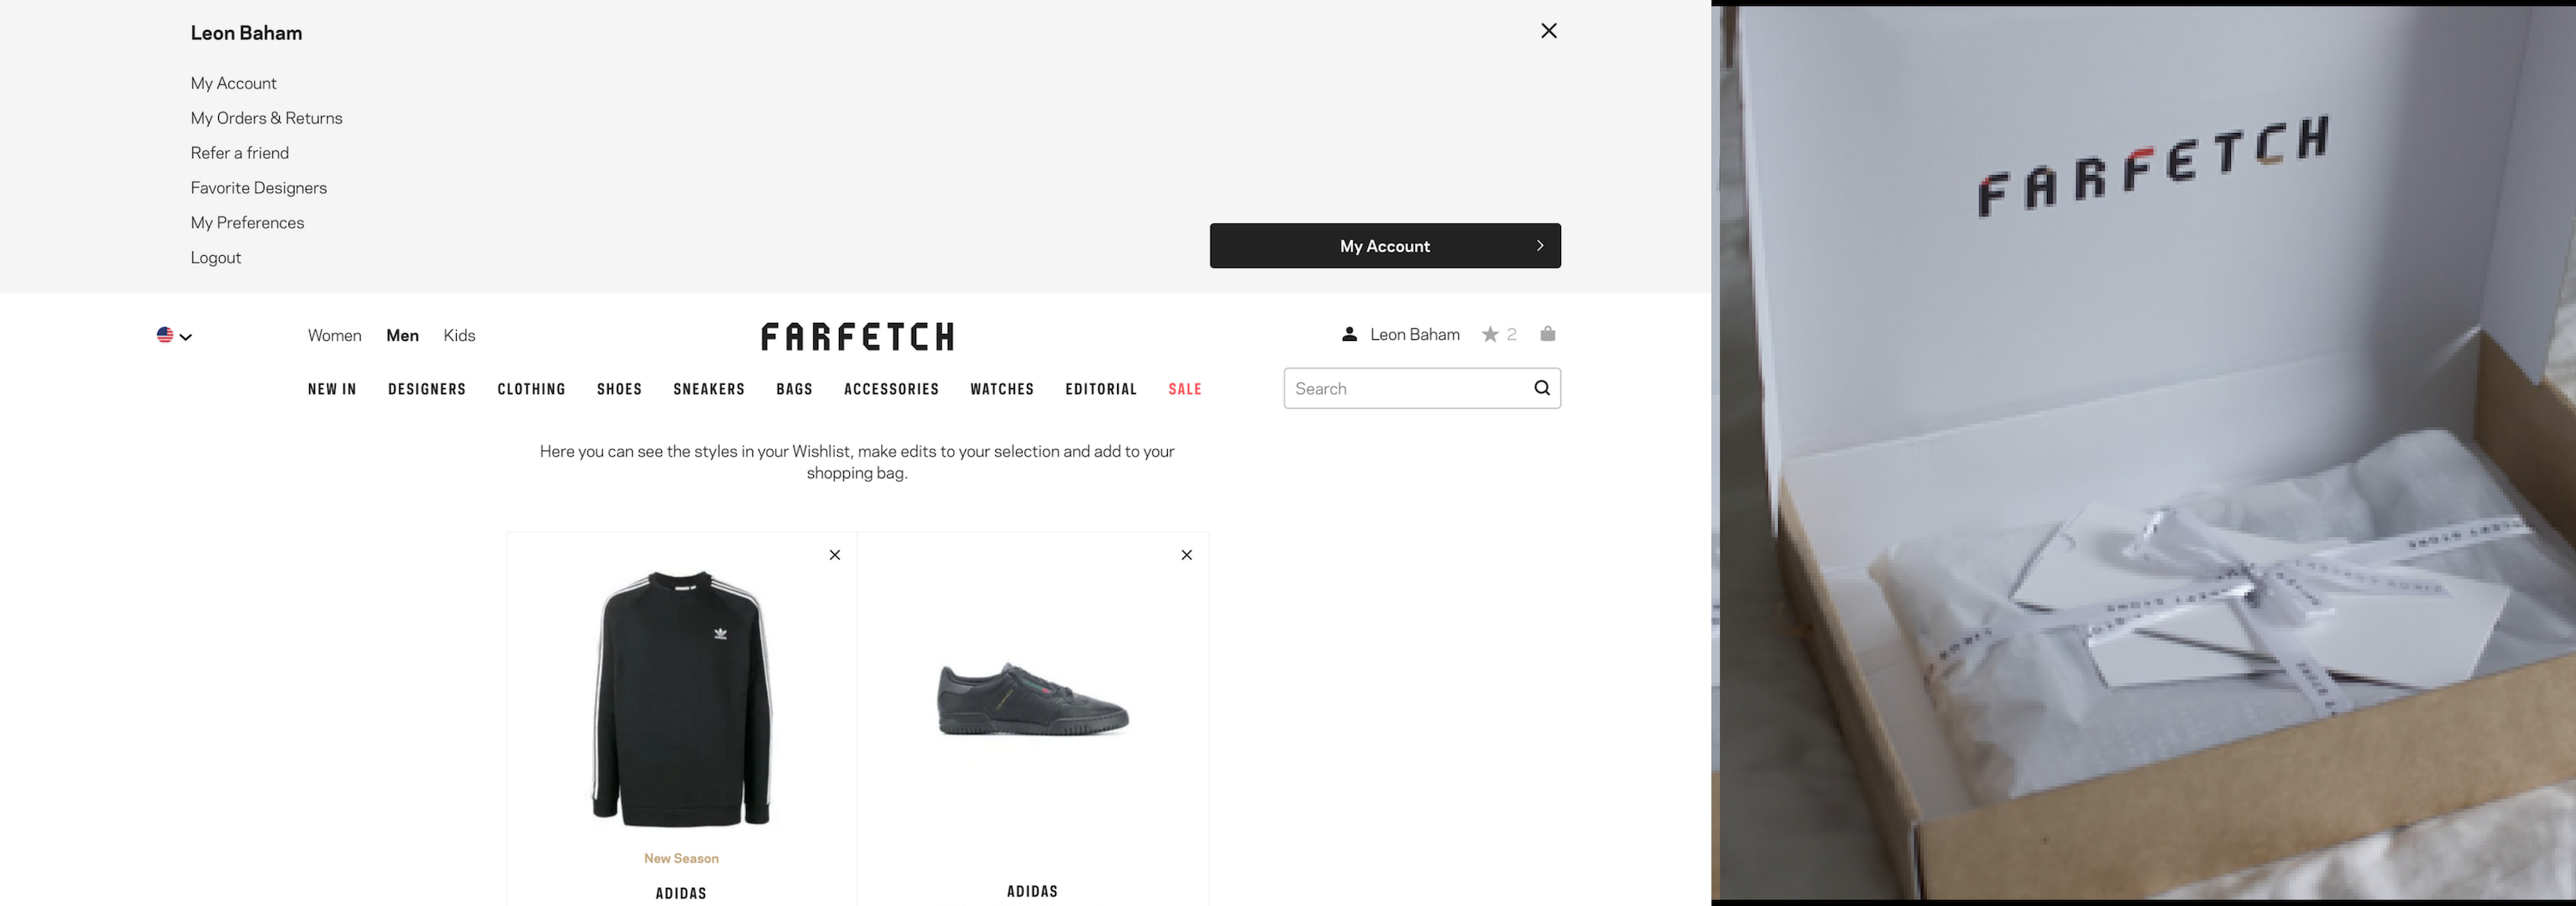 screenshot of FarFetch personalized experience